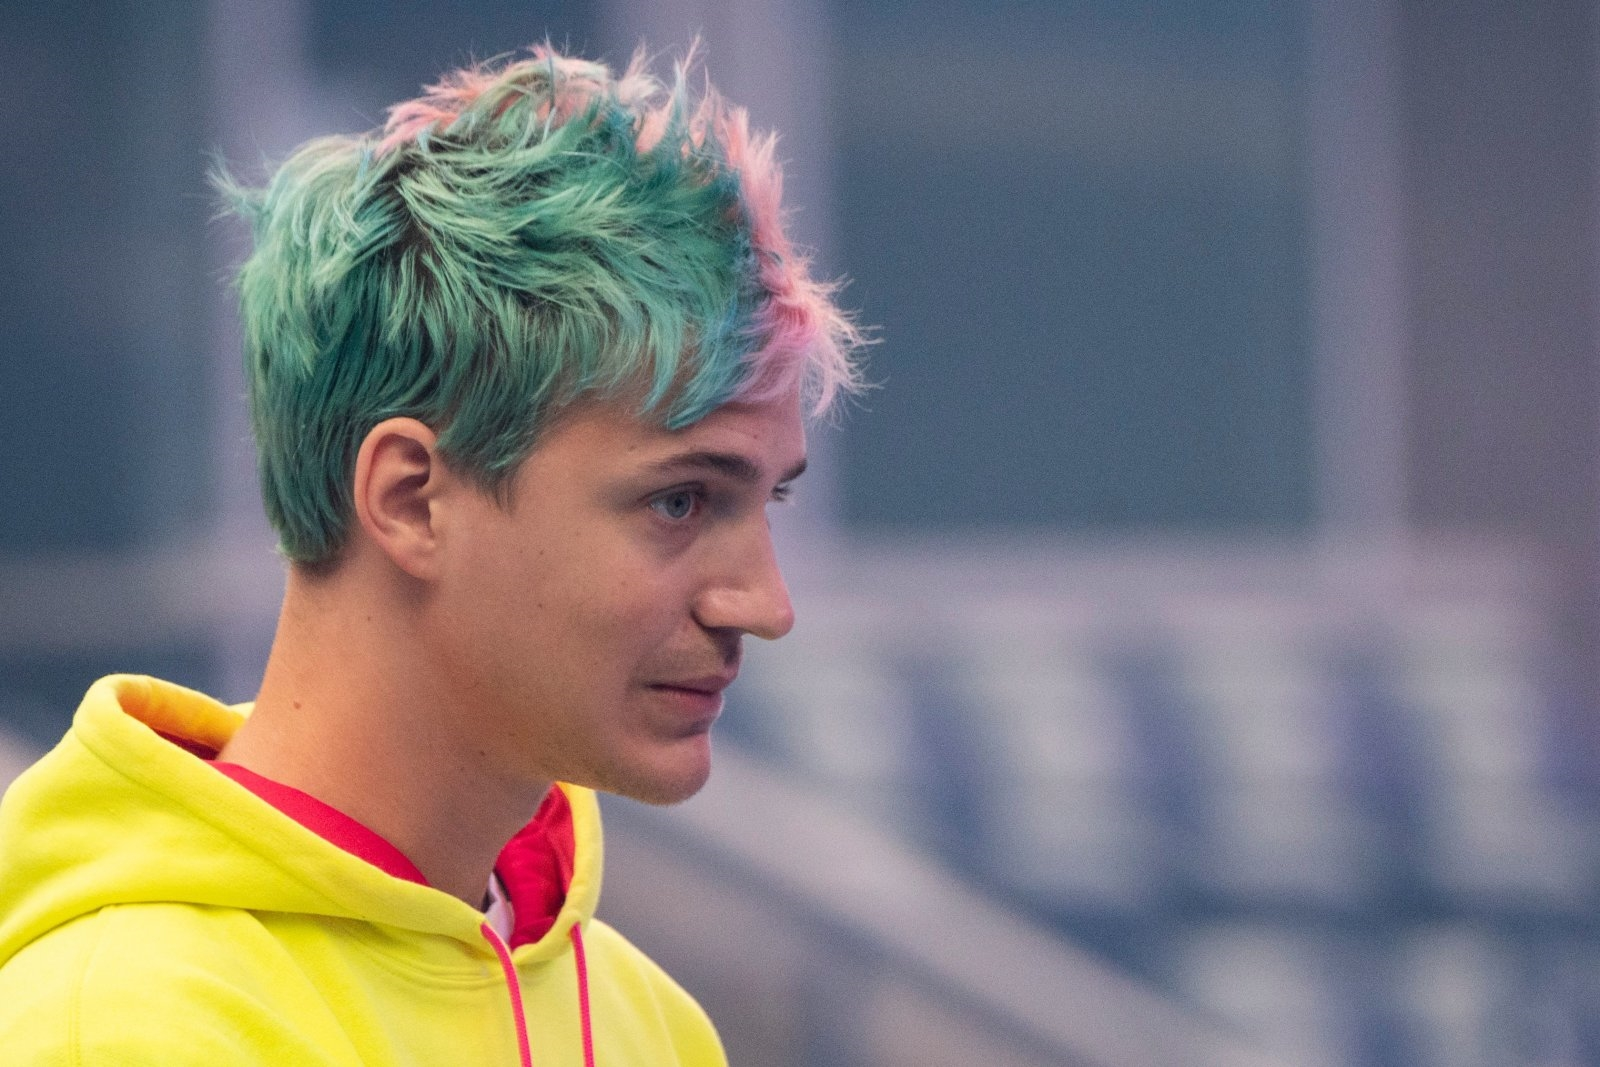 Ninja calls out Twitch after his dormant channel highlights porn | DeviceDaily.com